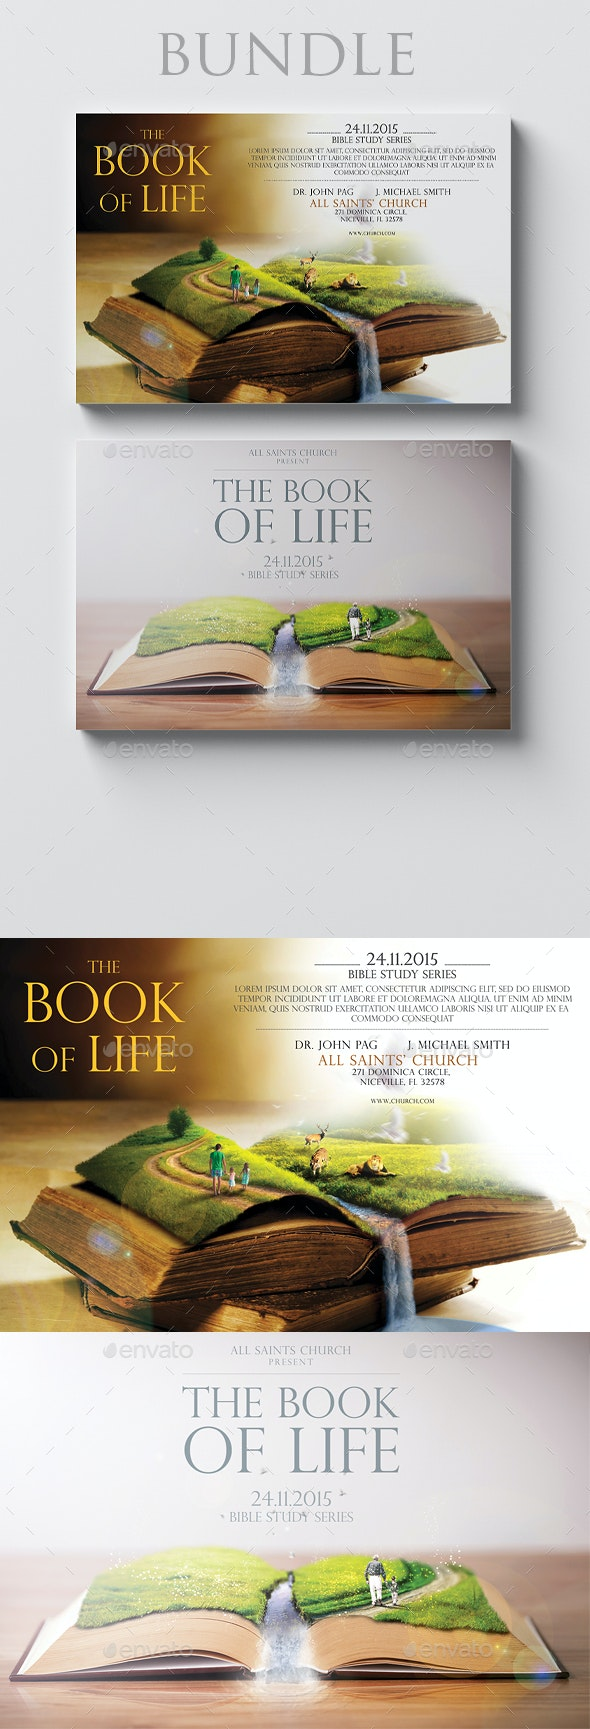 The Book of Life 6x4 Bundle - Church Flyers